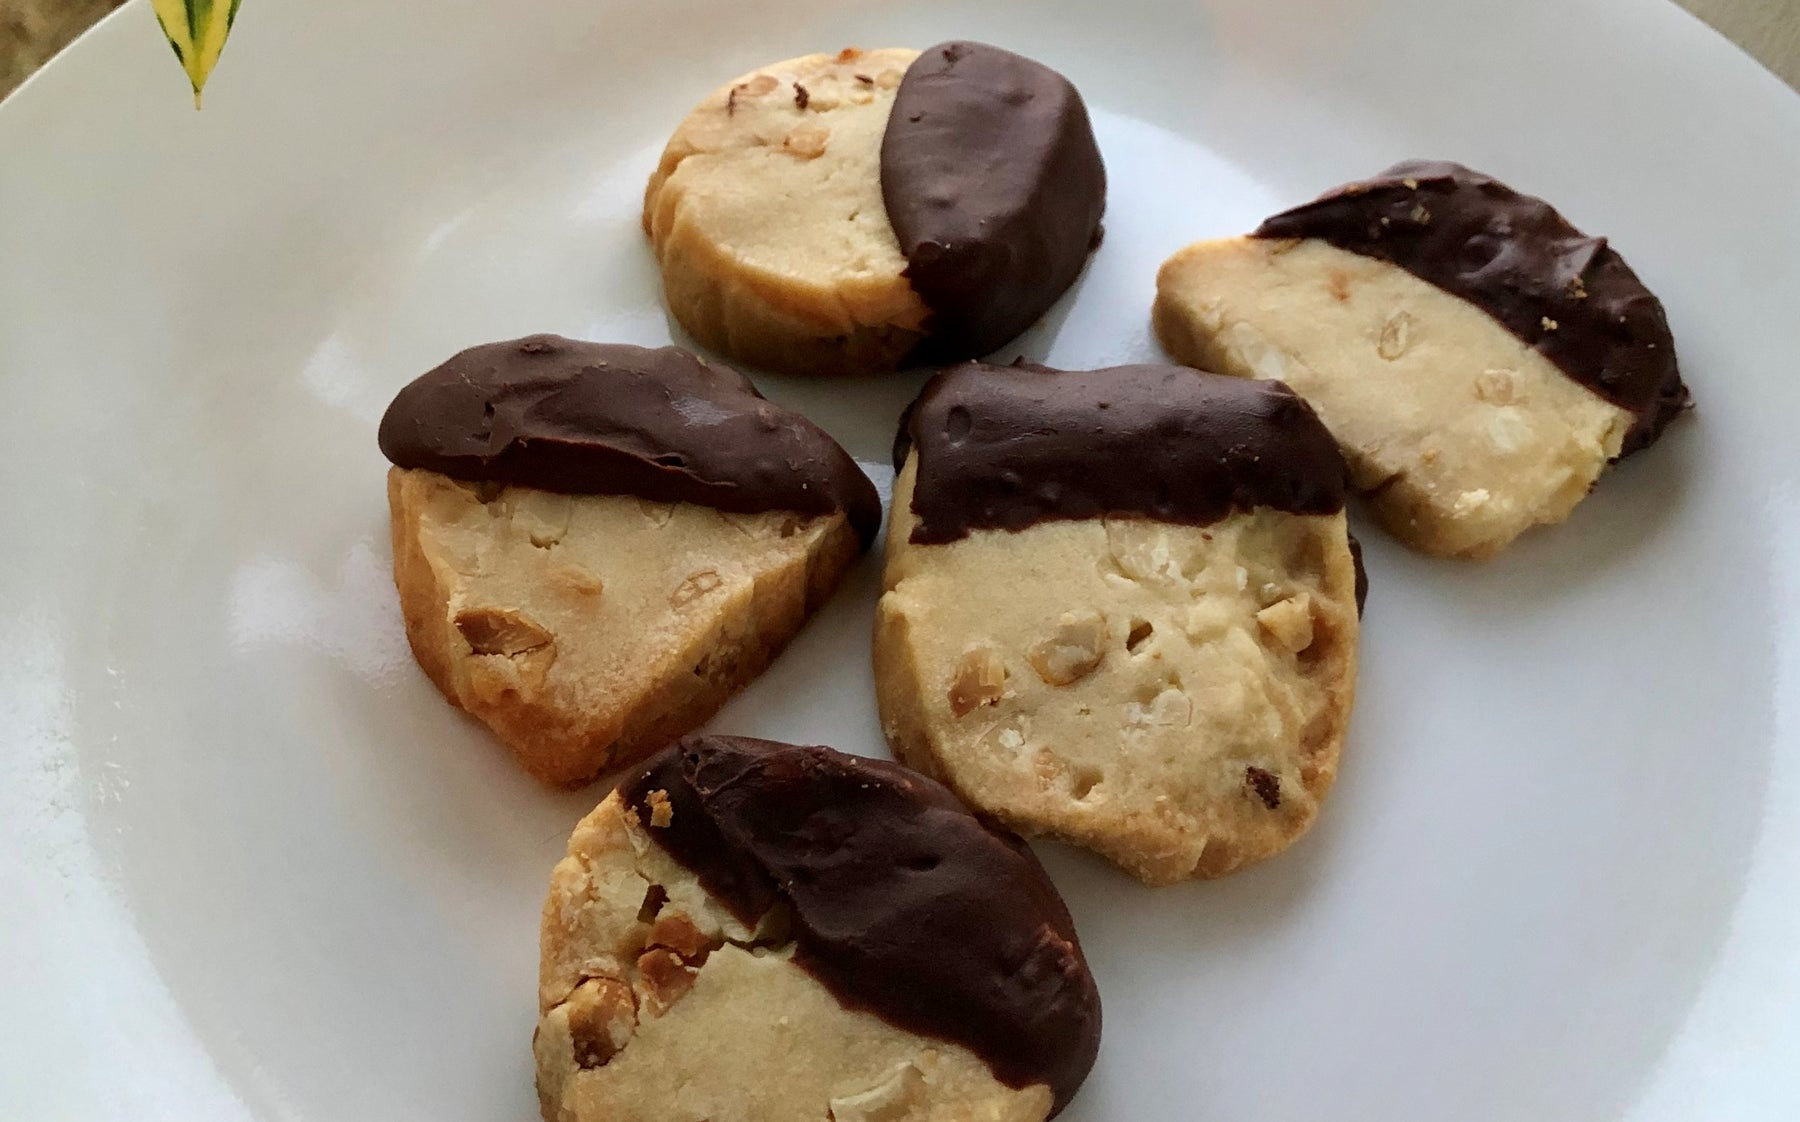 Chocolate Dipped Macadamia Nut Shortbread Cookies